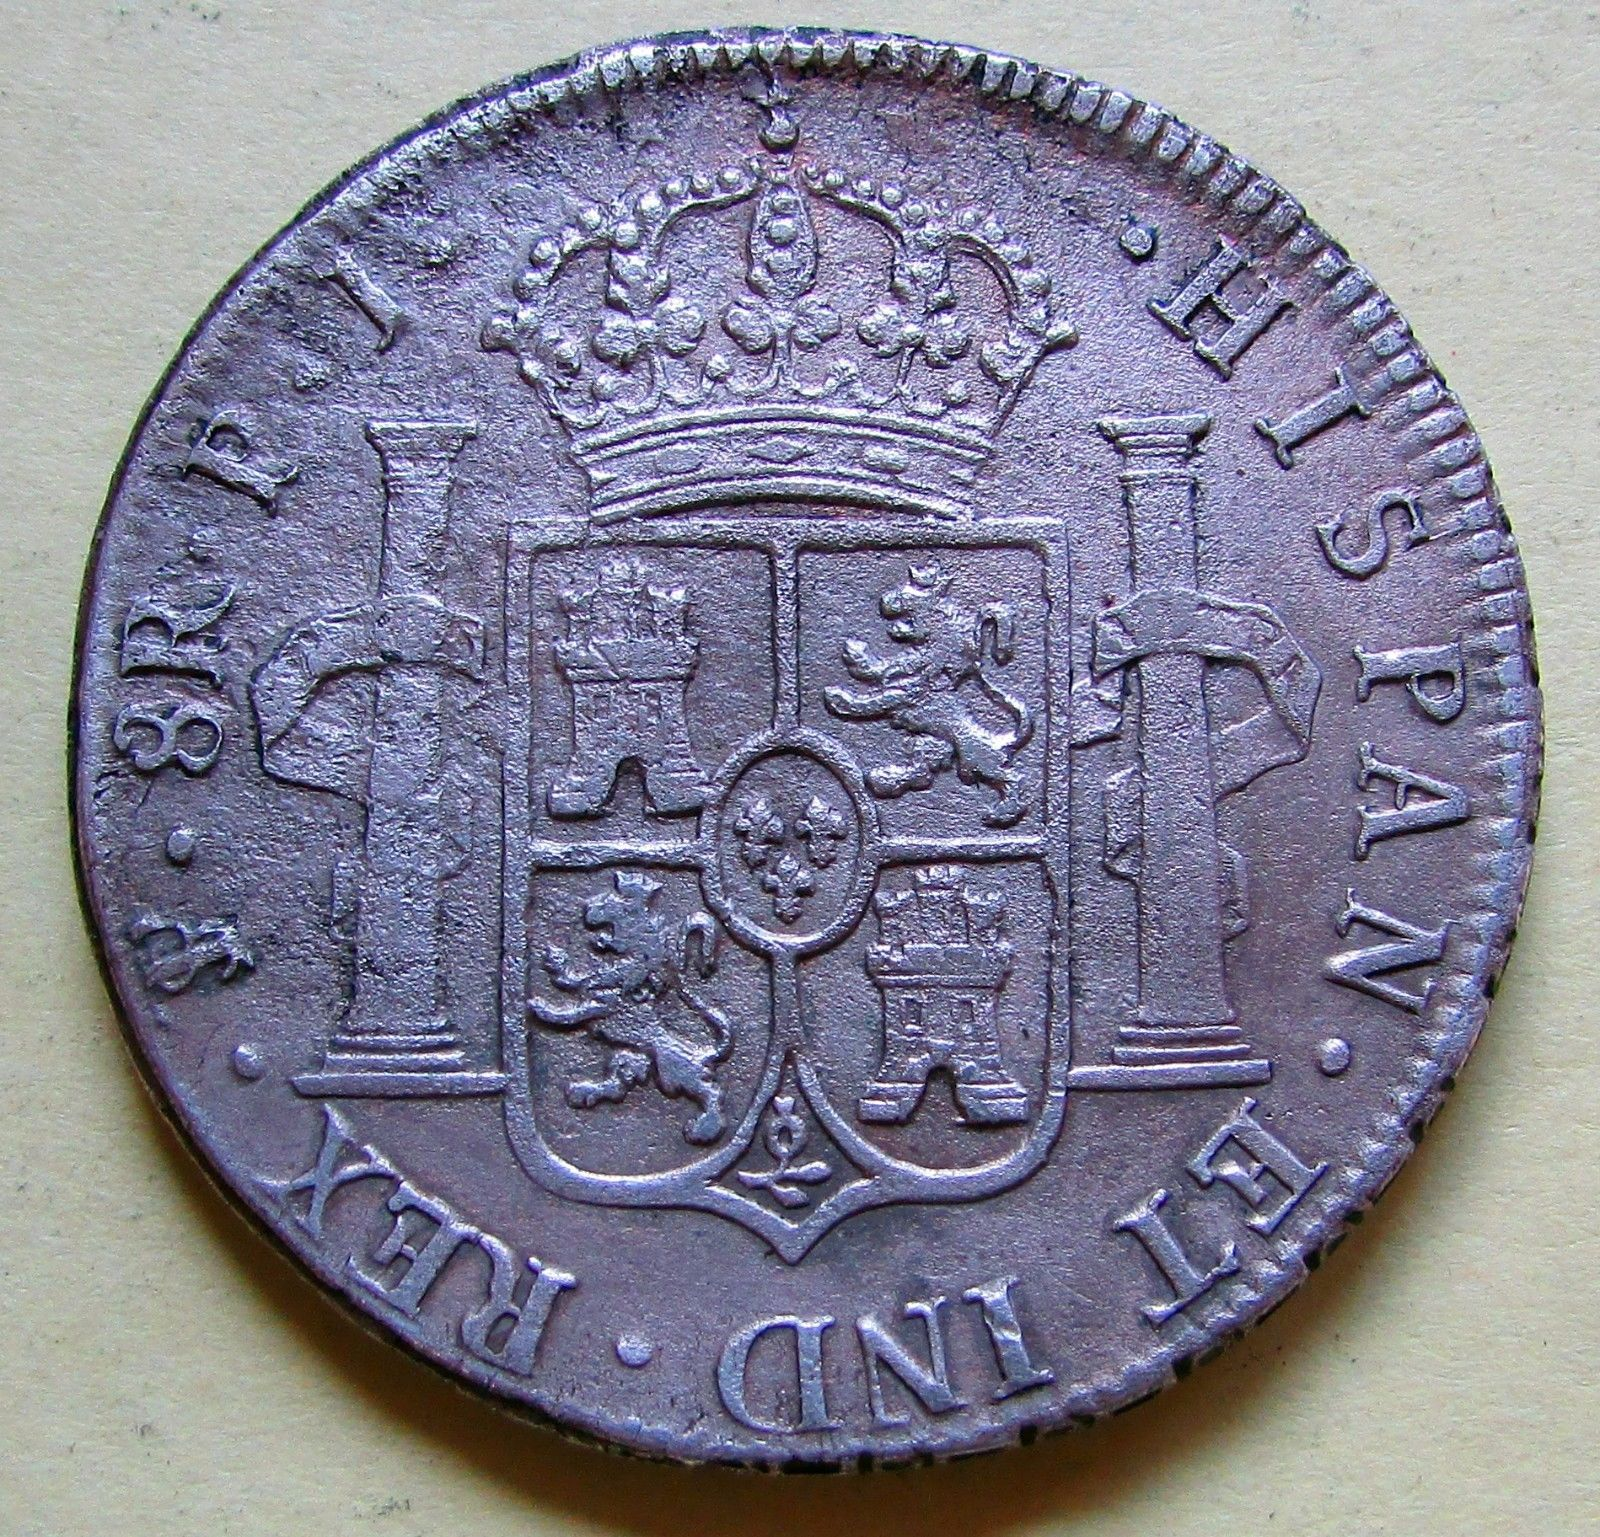 1818-PTS Bolivia 8 Reales - Ferdinand VII. 0.8960 Silver KM #84 - 2047